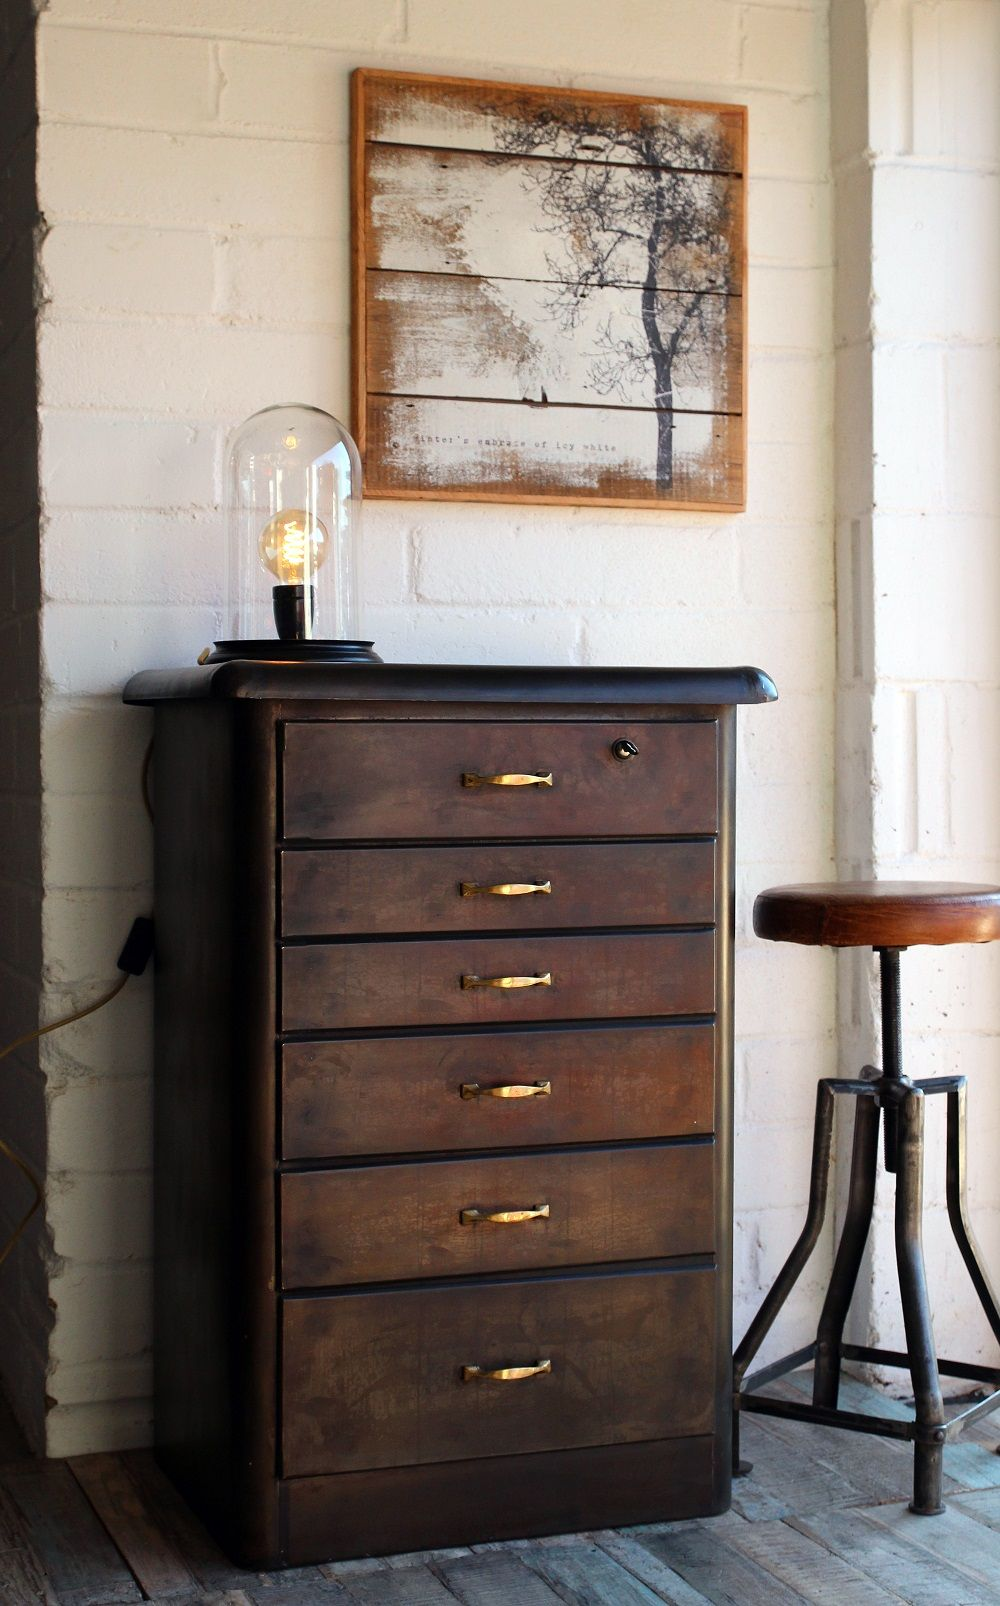 Vintage Style Metal Chest of Drawers,